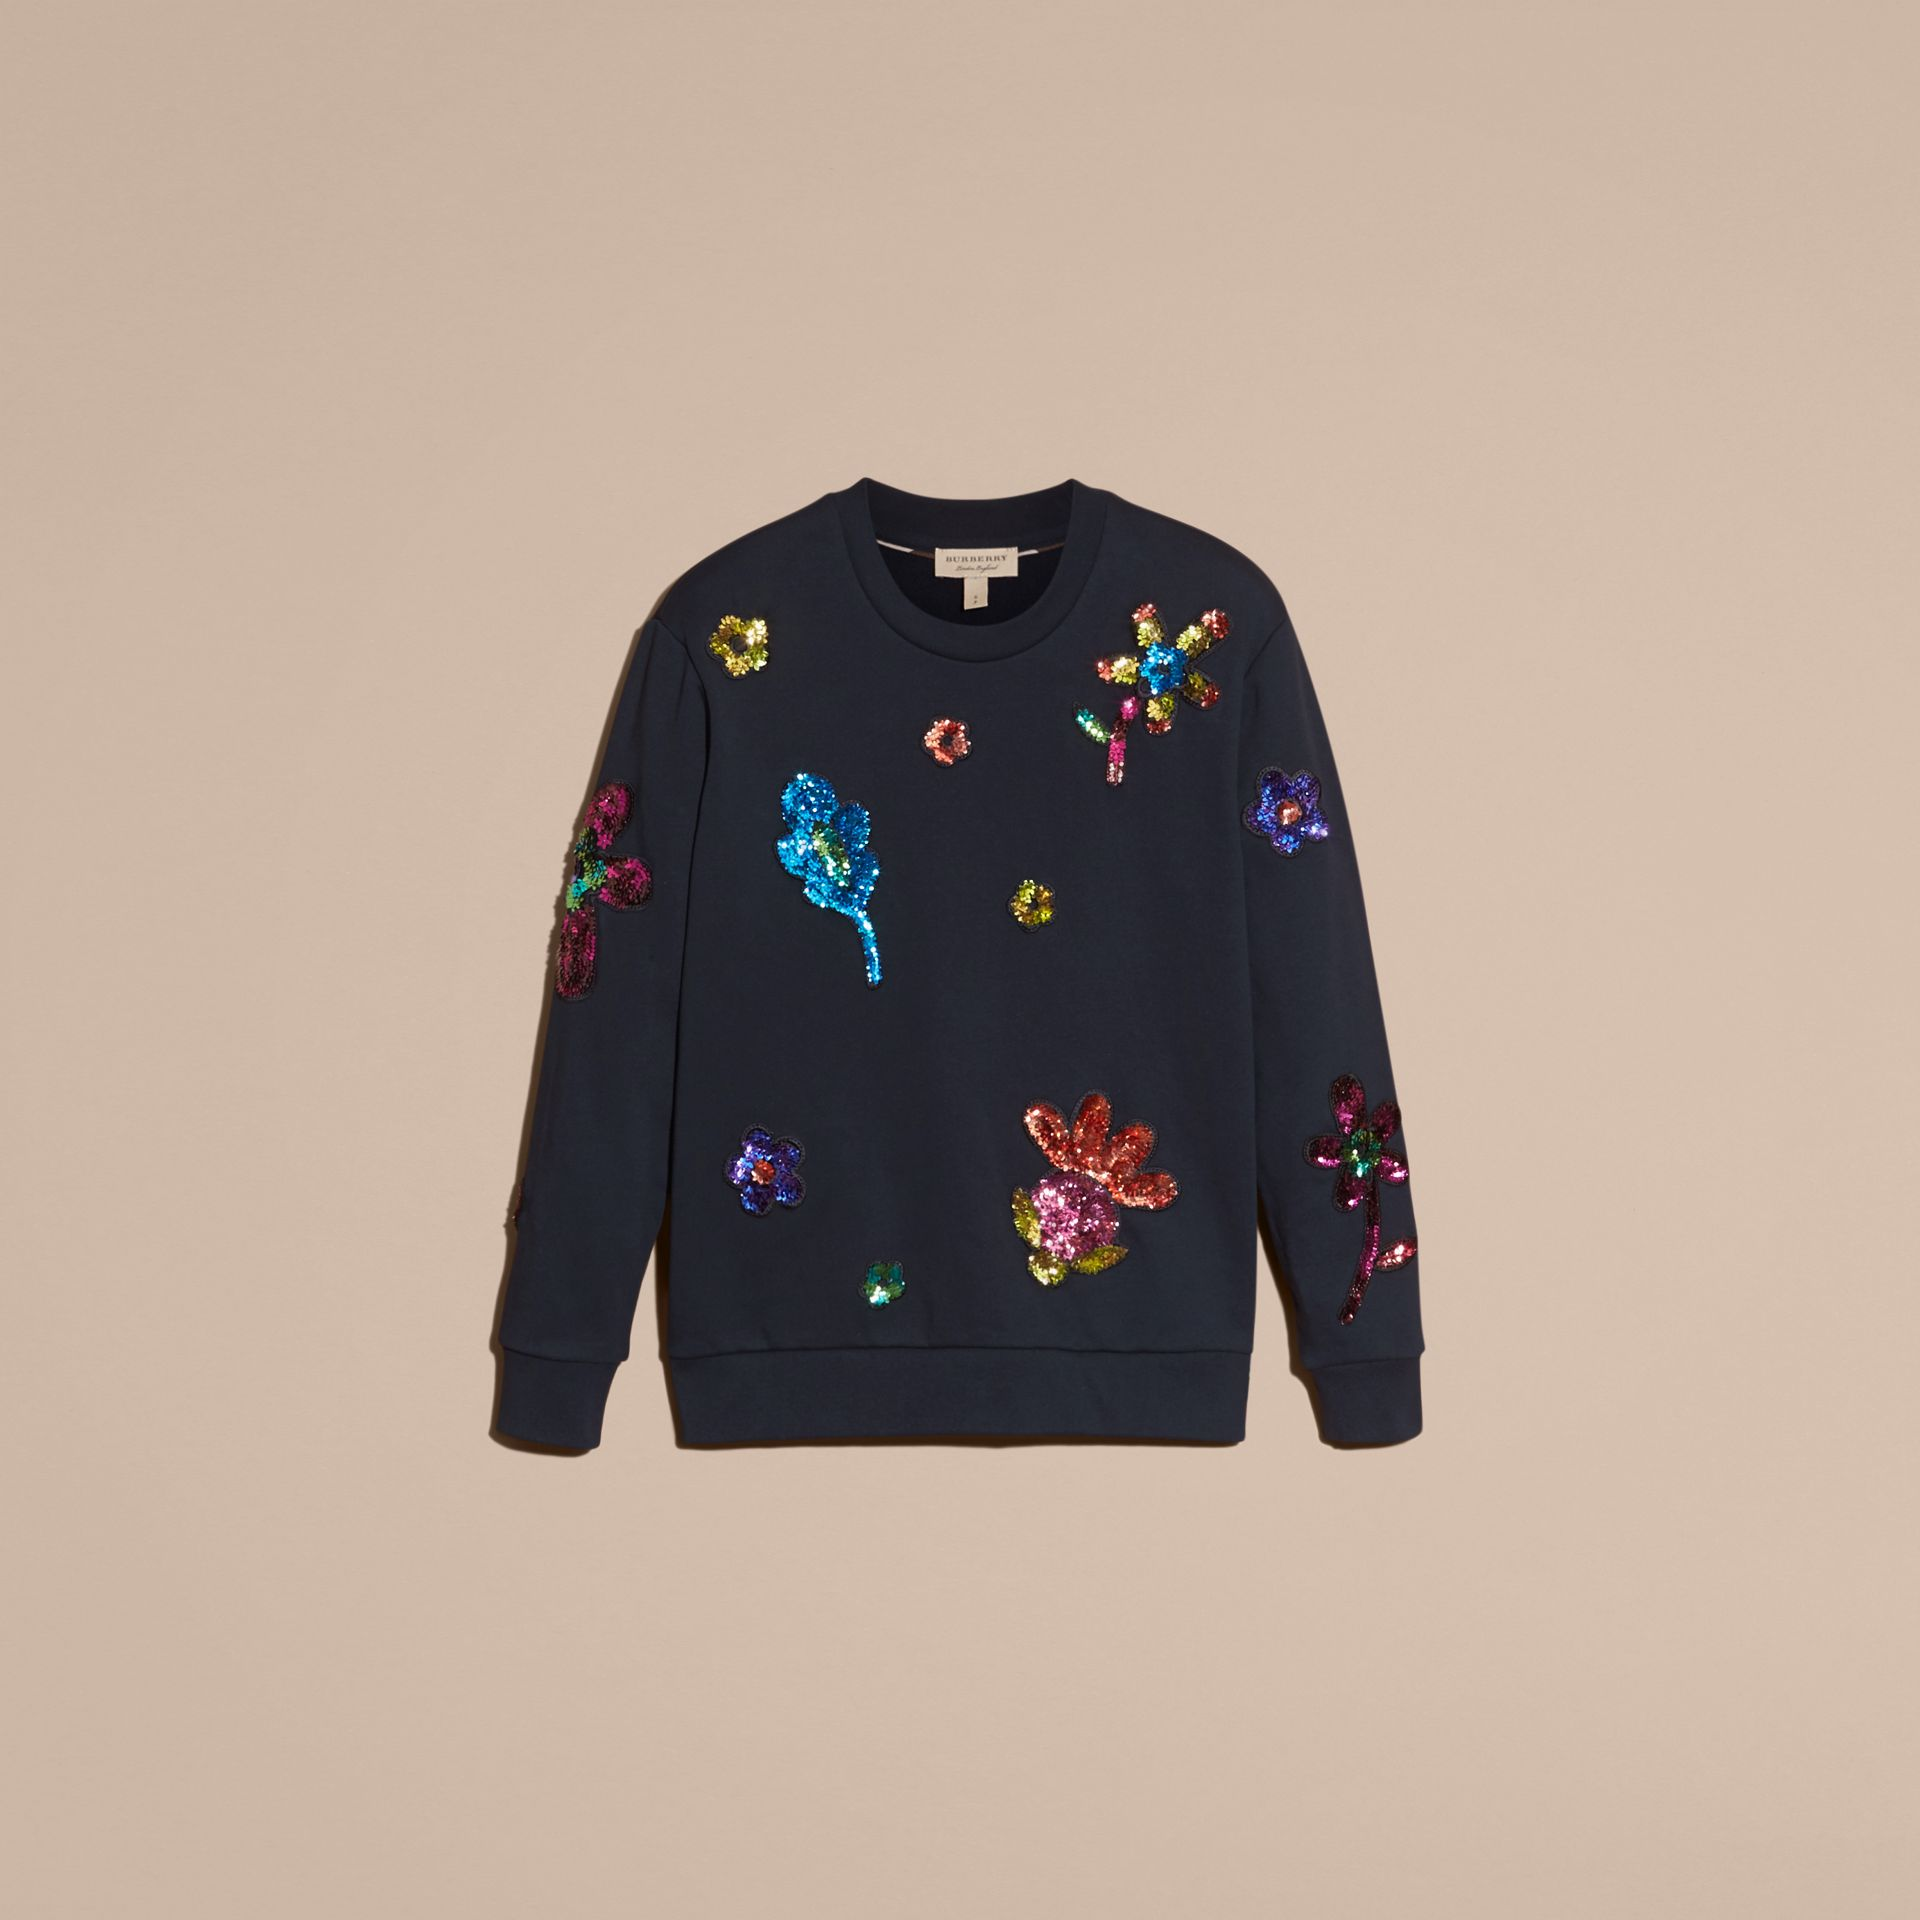 Navy Sequin Floral Appliqué Cotton Sweatshirt Navy - gallery image 4